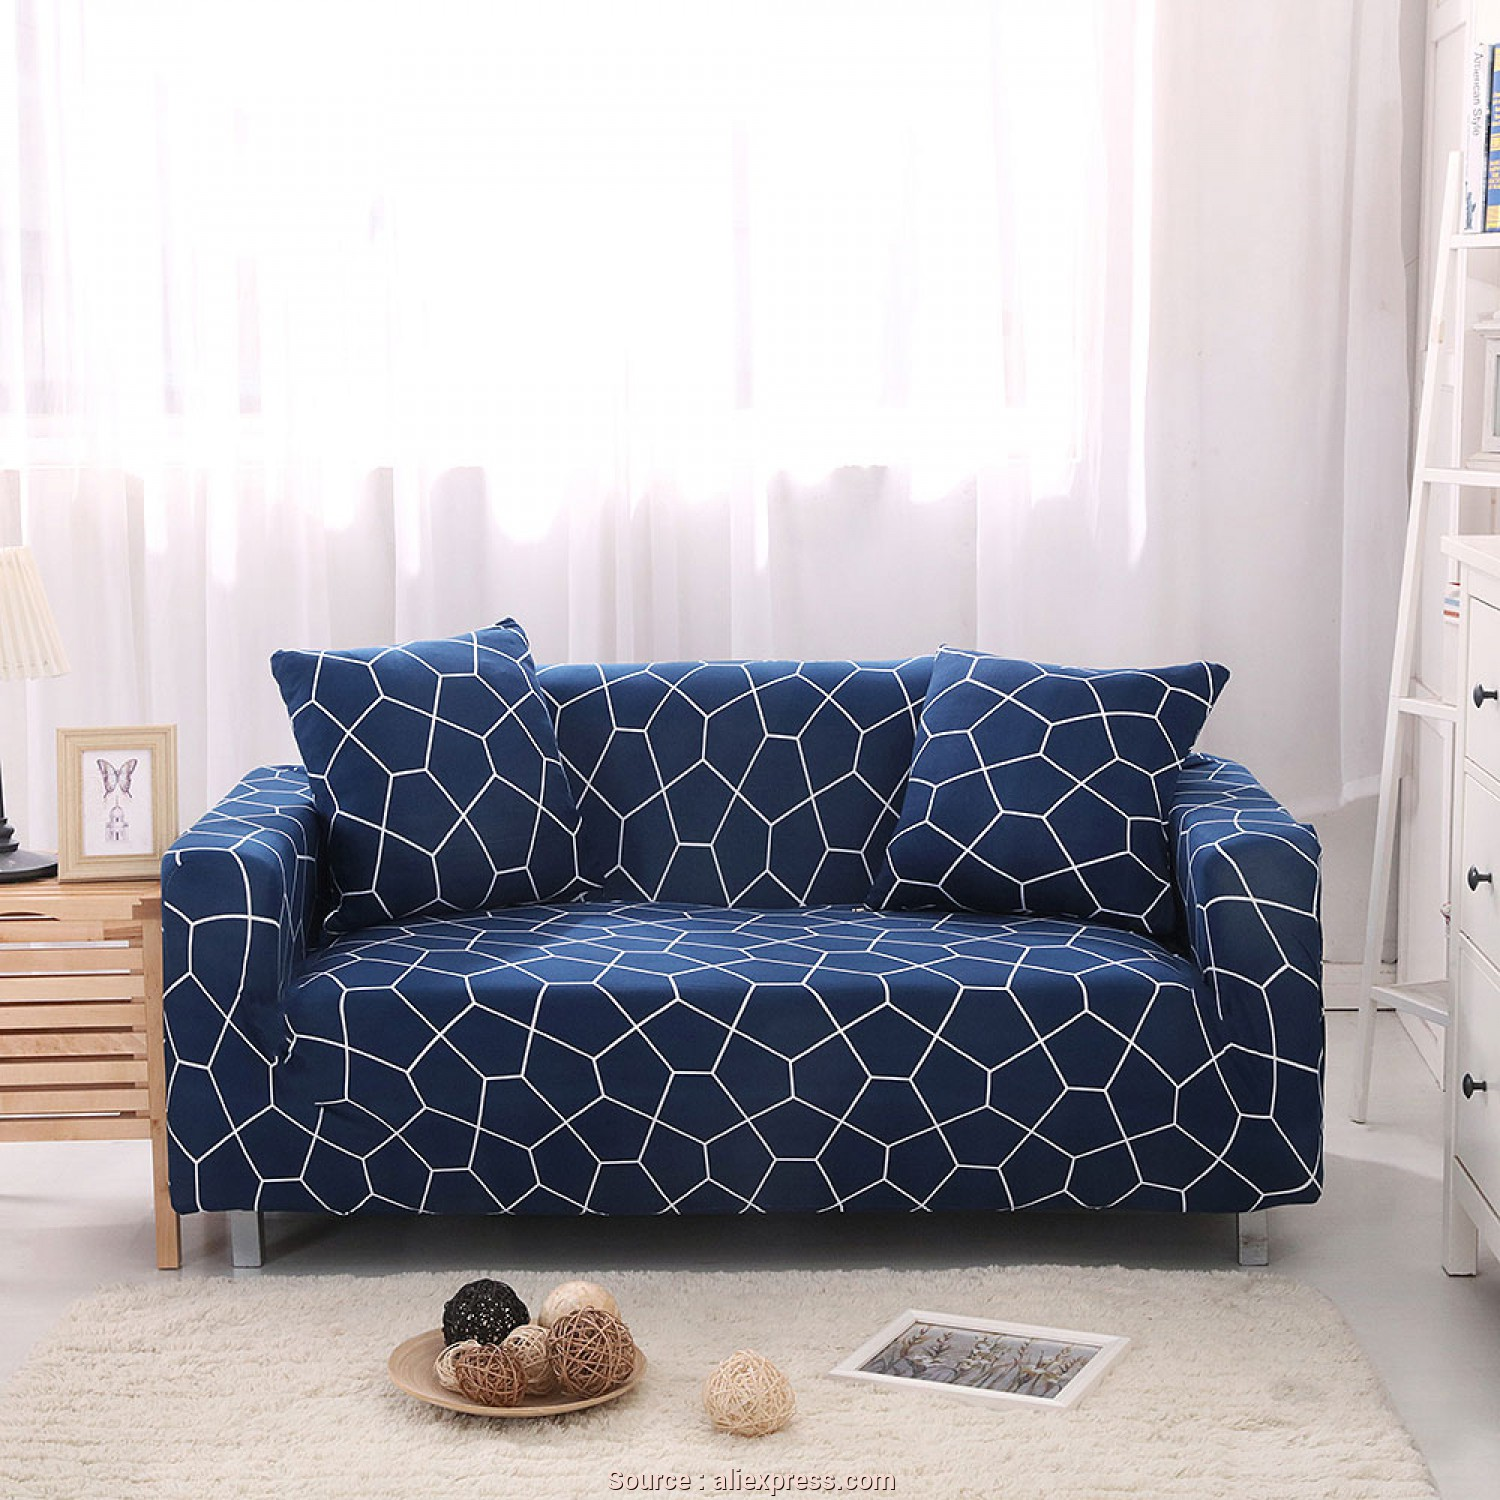 S&G Copridivano, Minimalista US $6.11, OFF|Leopard/Plaid Pattern Sofa Cover Slip Resistant Sofa Slipcover Couch Cover Sectional Sofa Covers, Living Room Copridivano 1PC-In